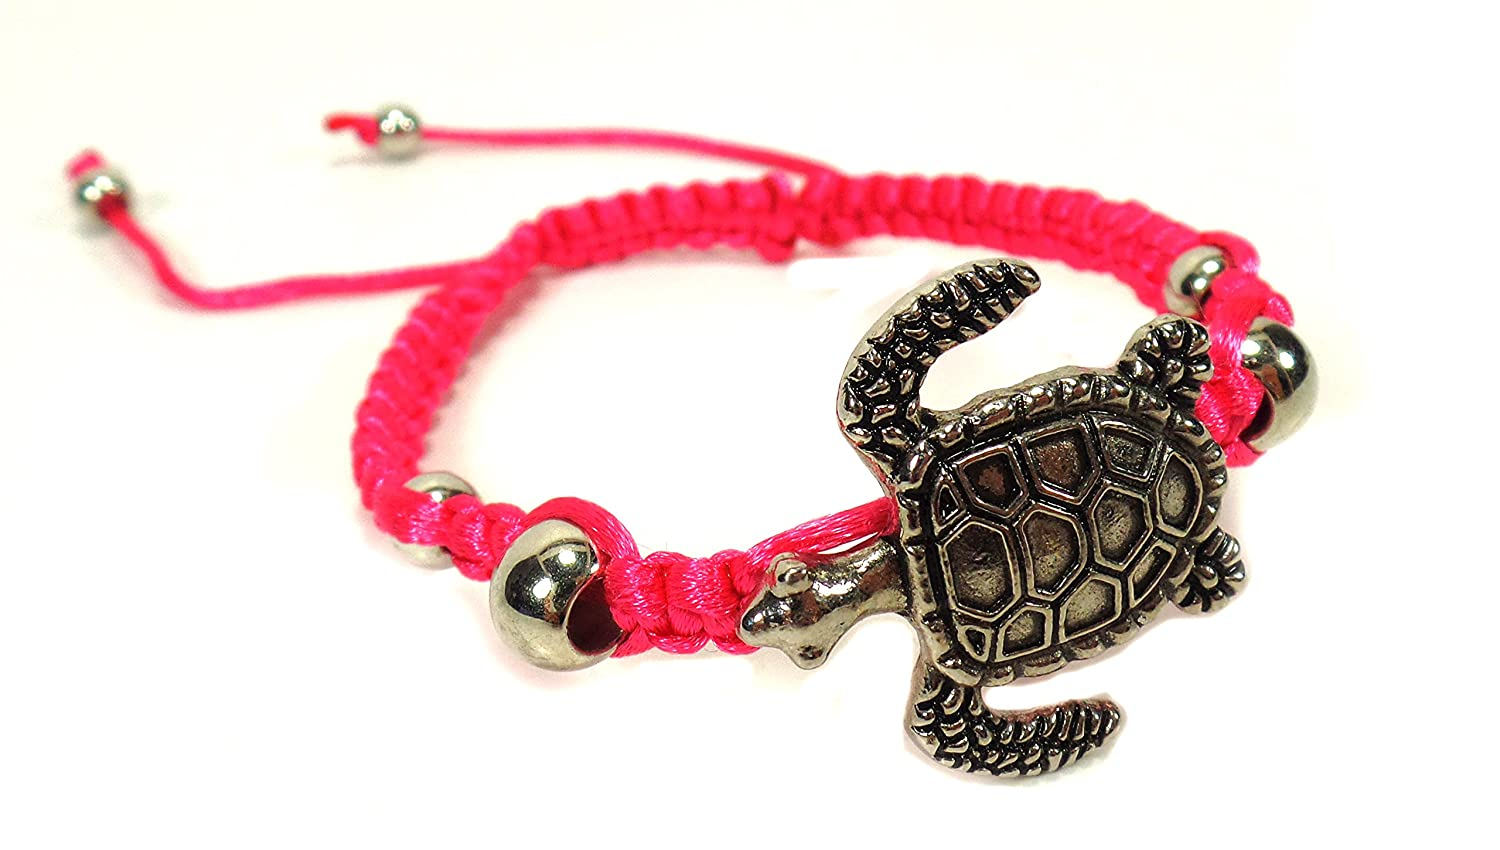 de bracelet gemstone turtle passport cc stone product bead beads ocean sea capture